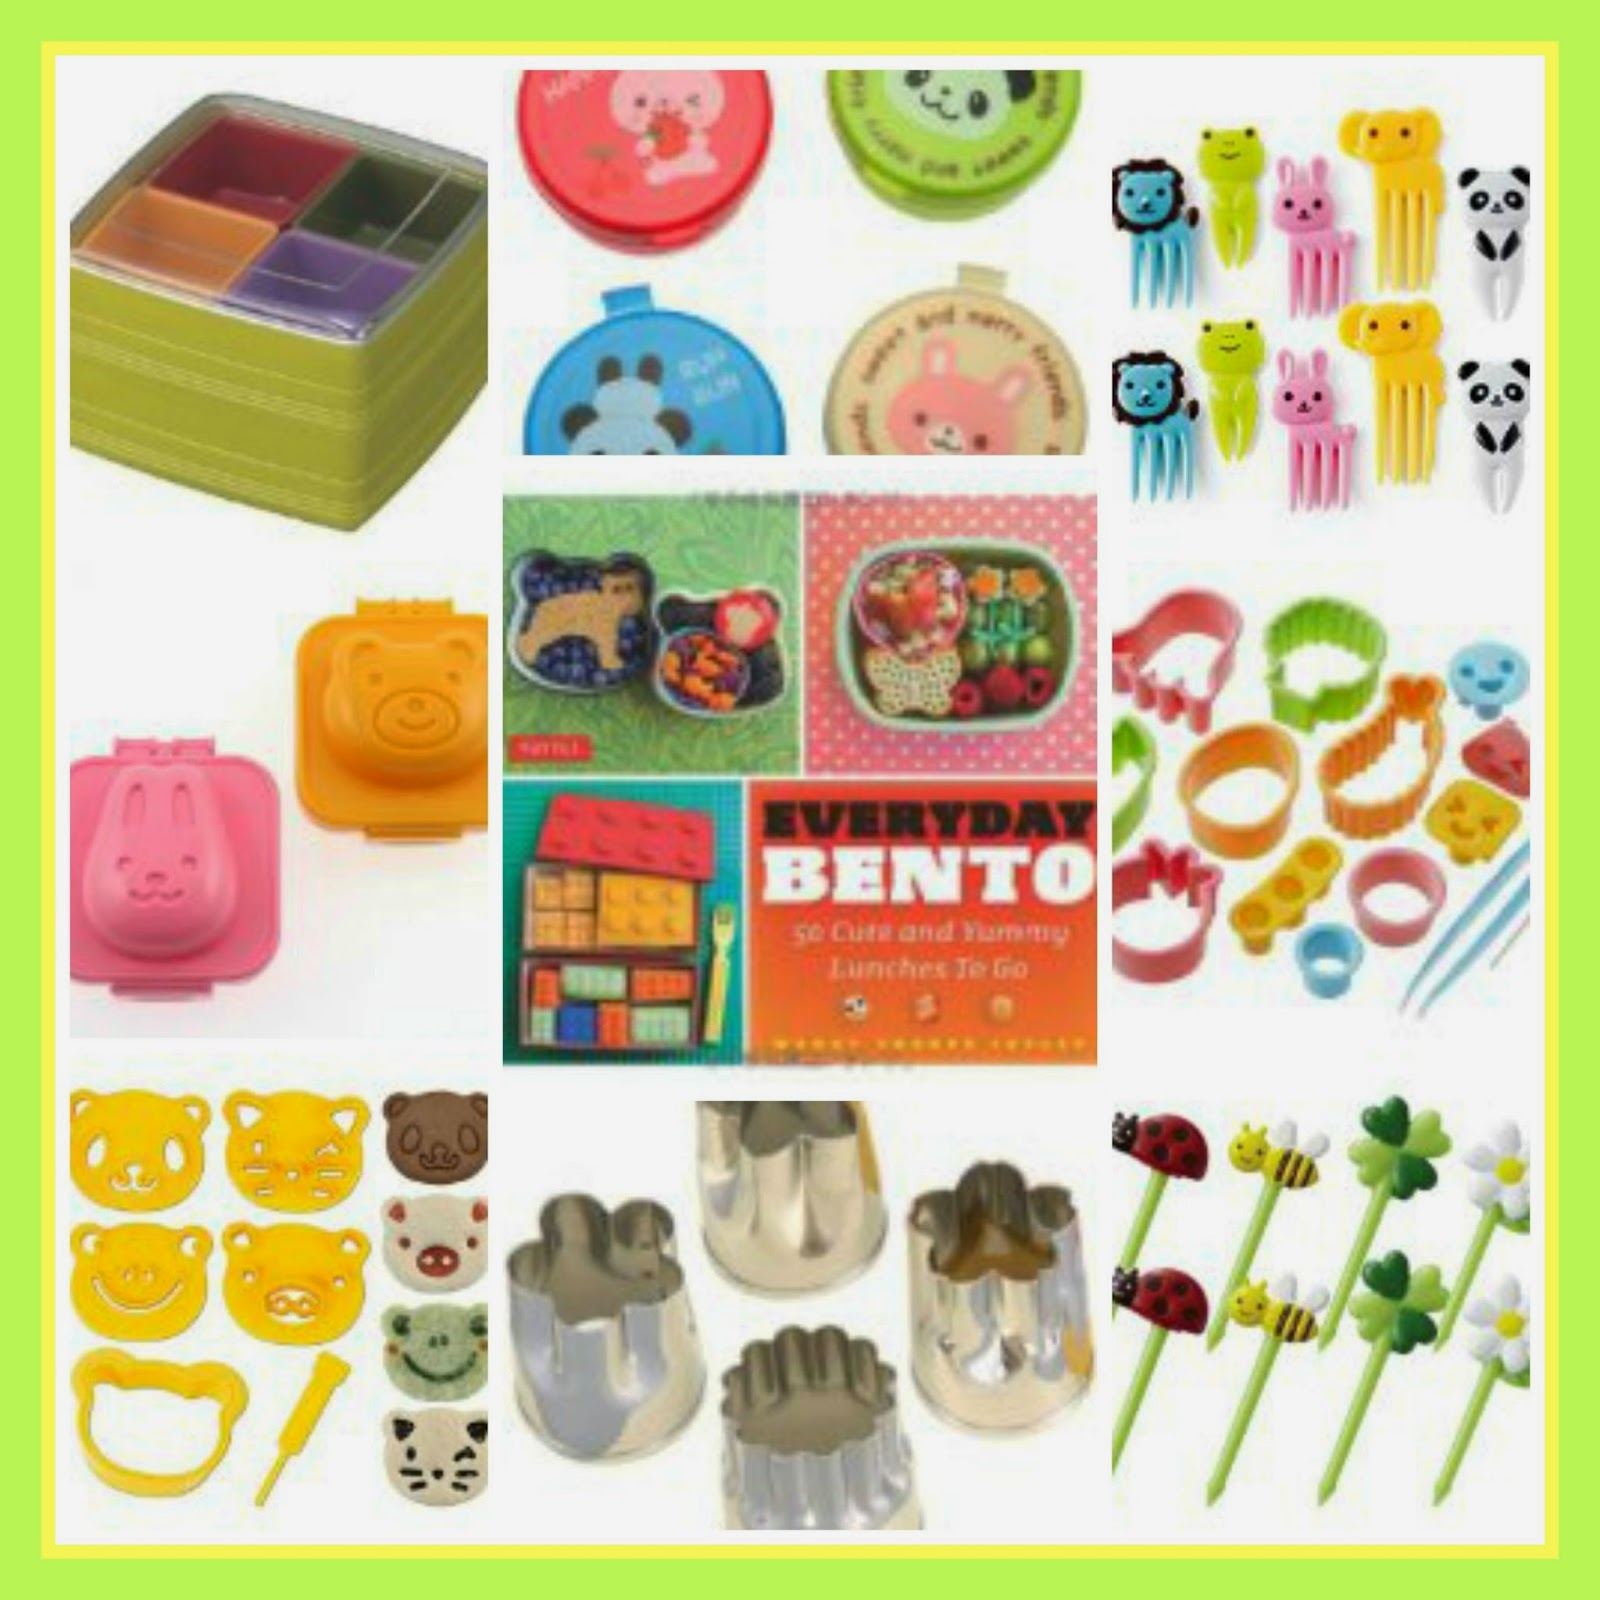 Bento Box Accessories For Kids: Perfect Bento Box Lunch Supplies For Back-to-School